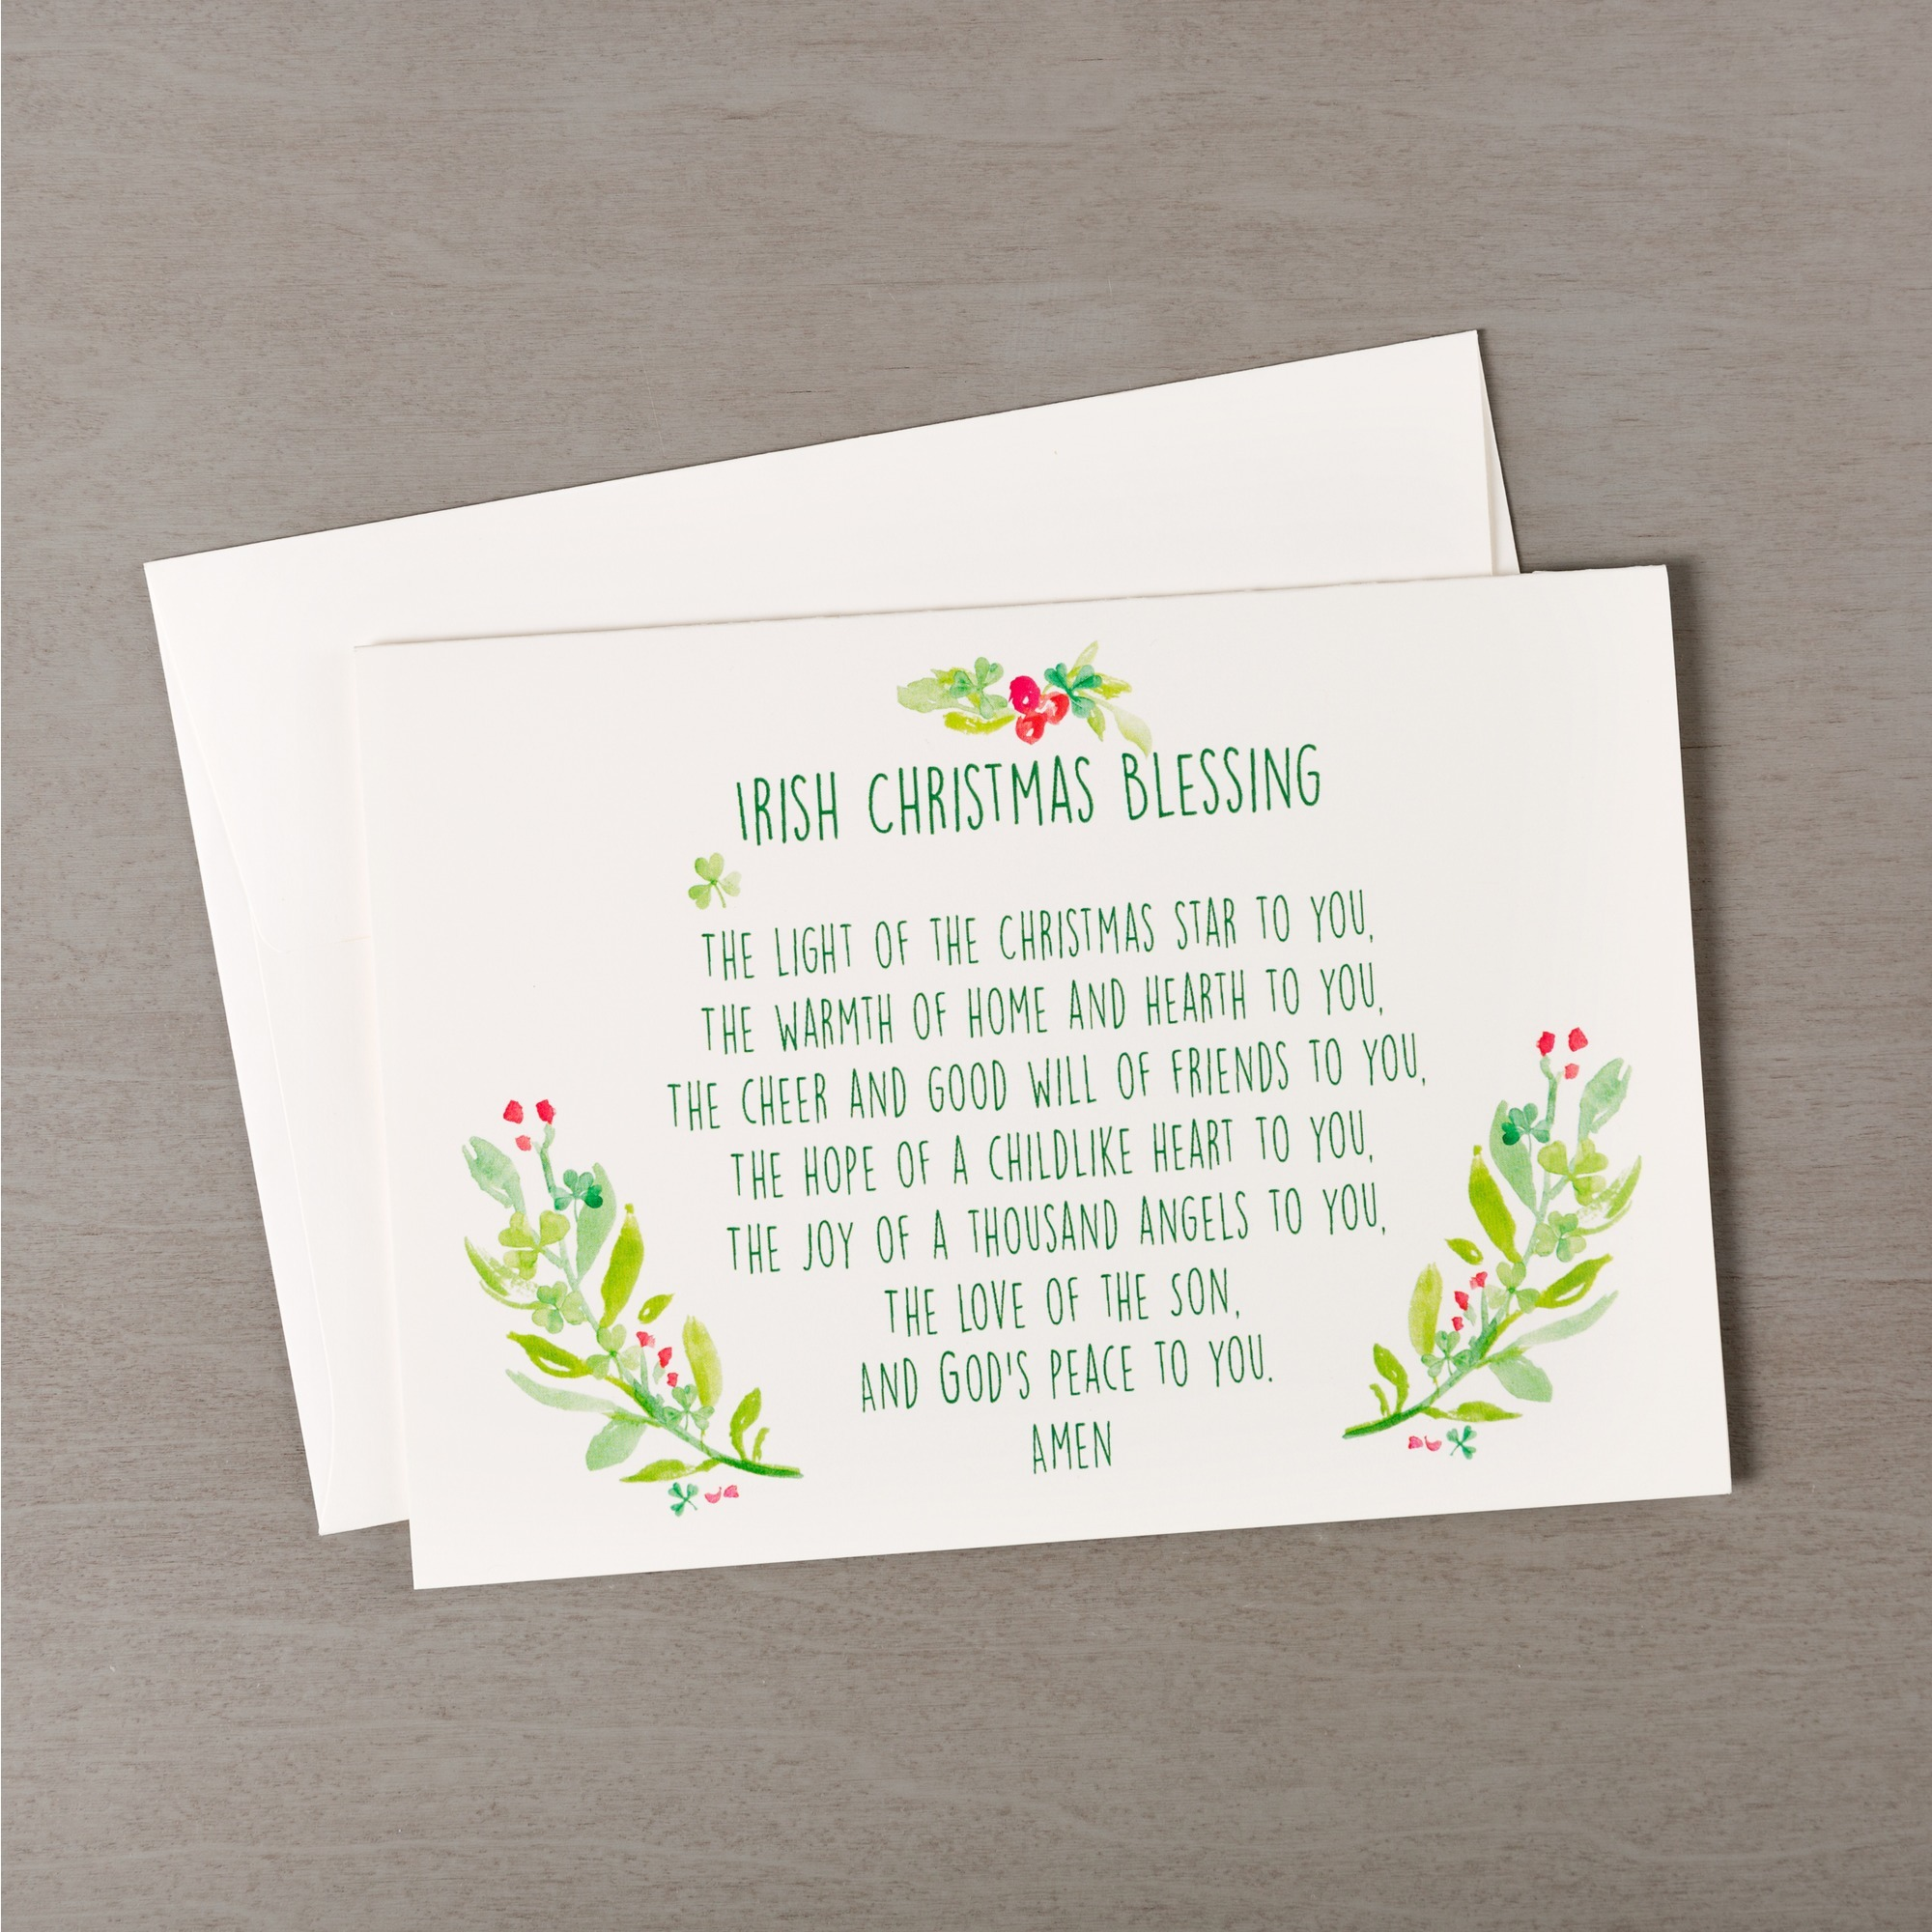 Irish Christmas Blessing Greeting Cards - Set of 20 | The Catholic ...